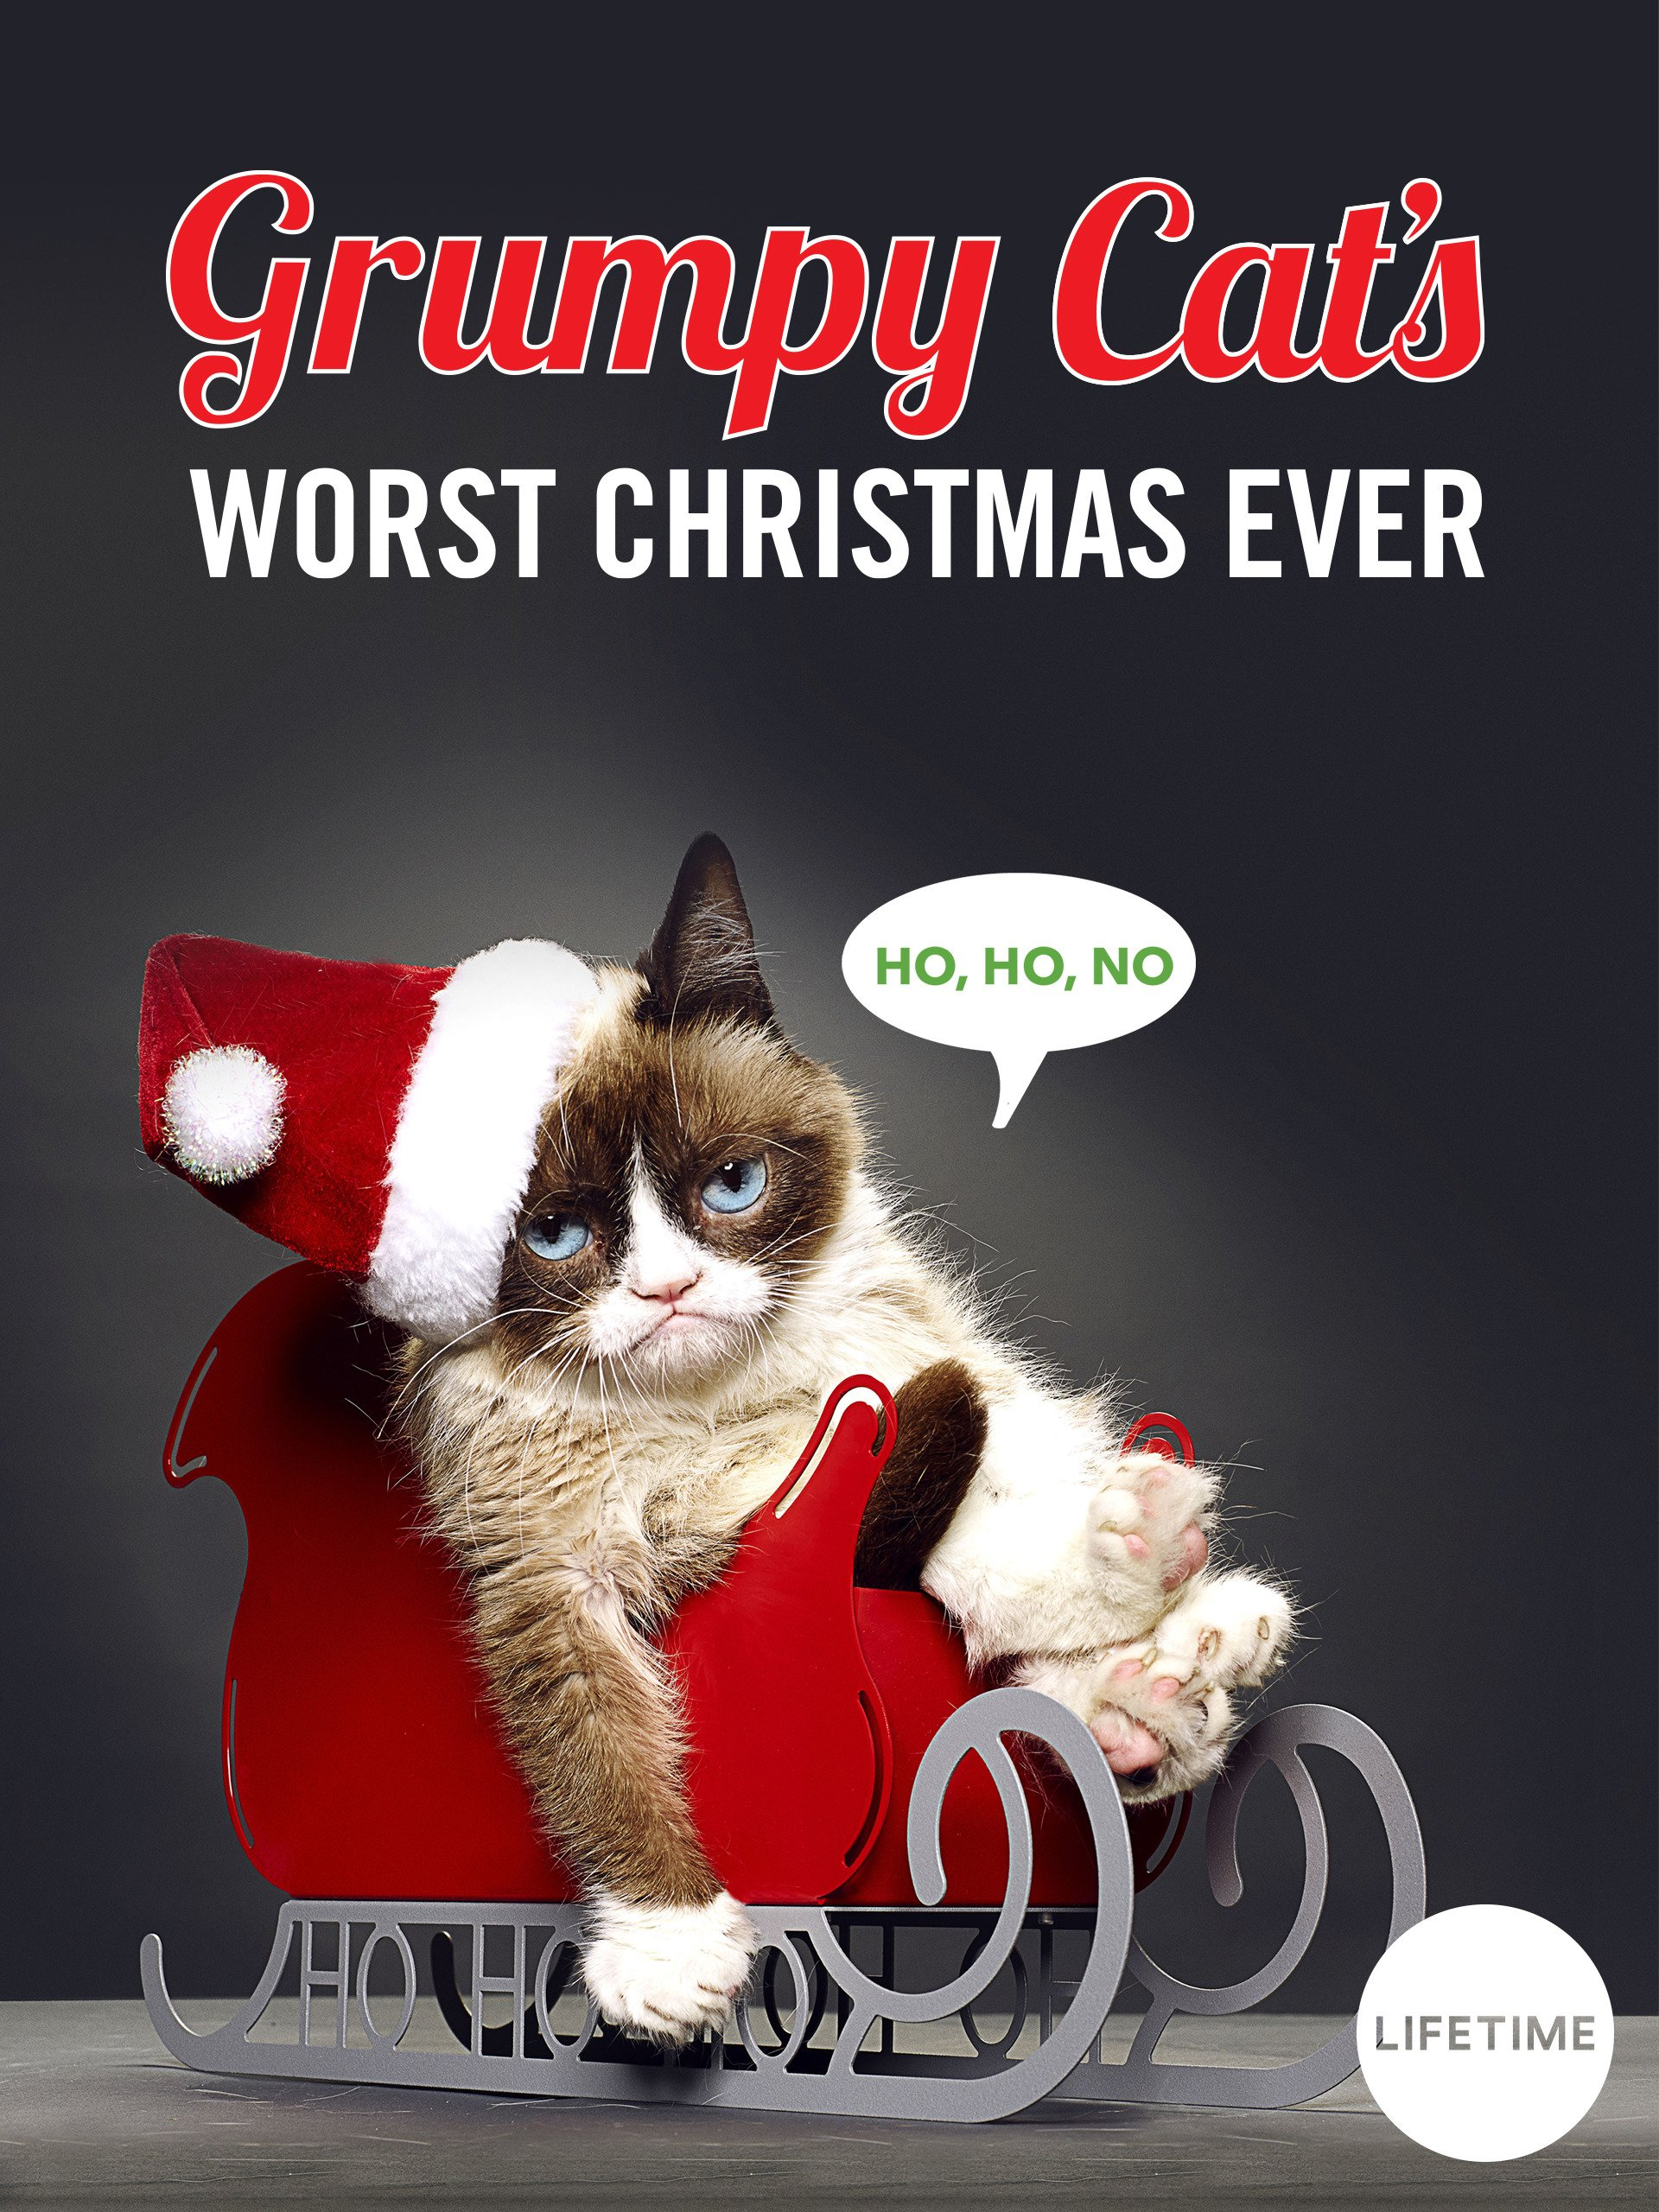 Amazon grumpy cats worst christmas ever grumpy cat amazon grumpy cats worst christmas ever grumpy cat productions inc amazon digital services llc thecheapjerseys